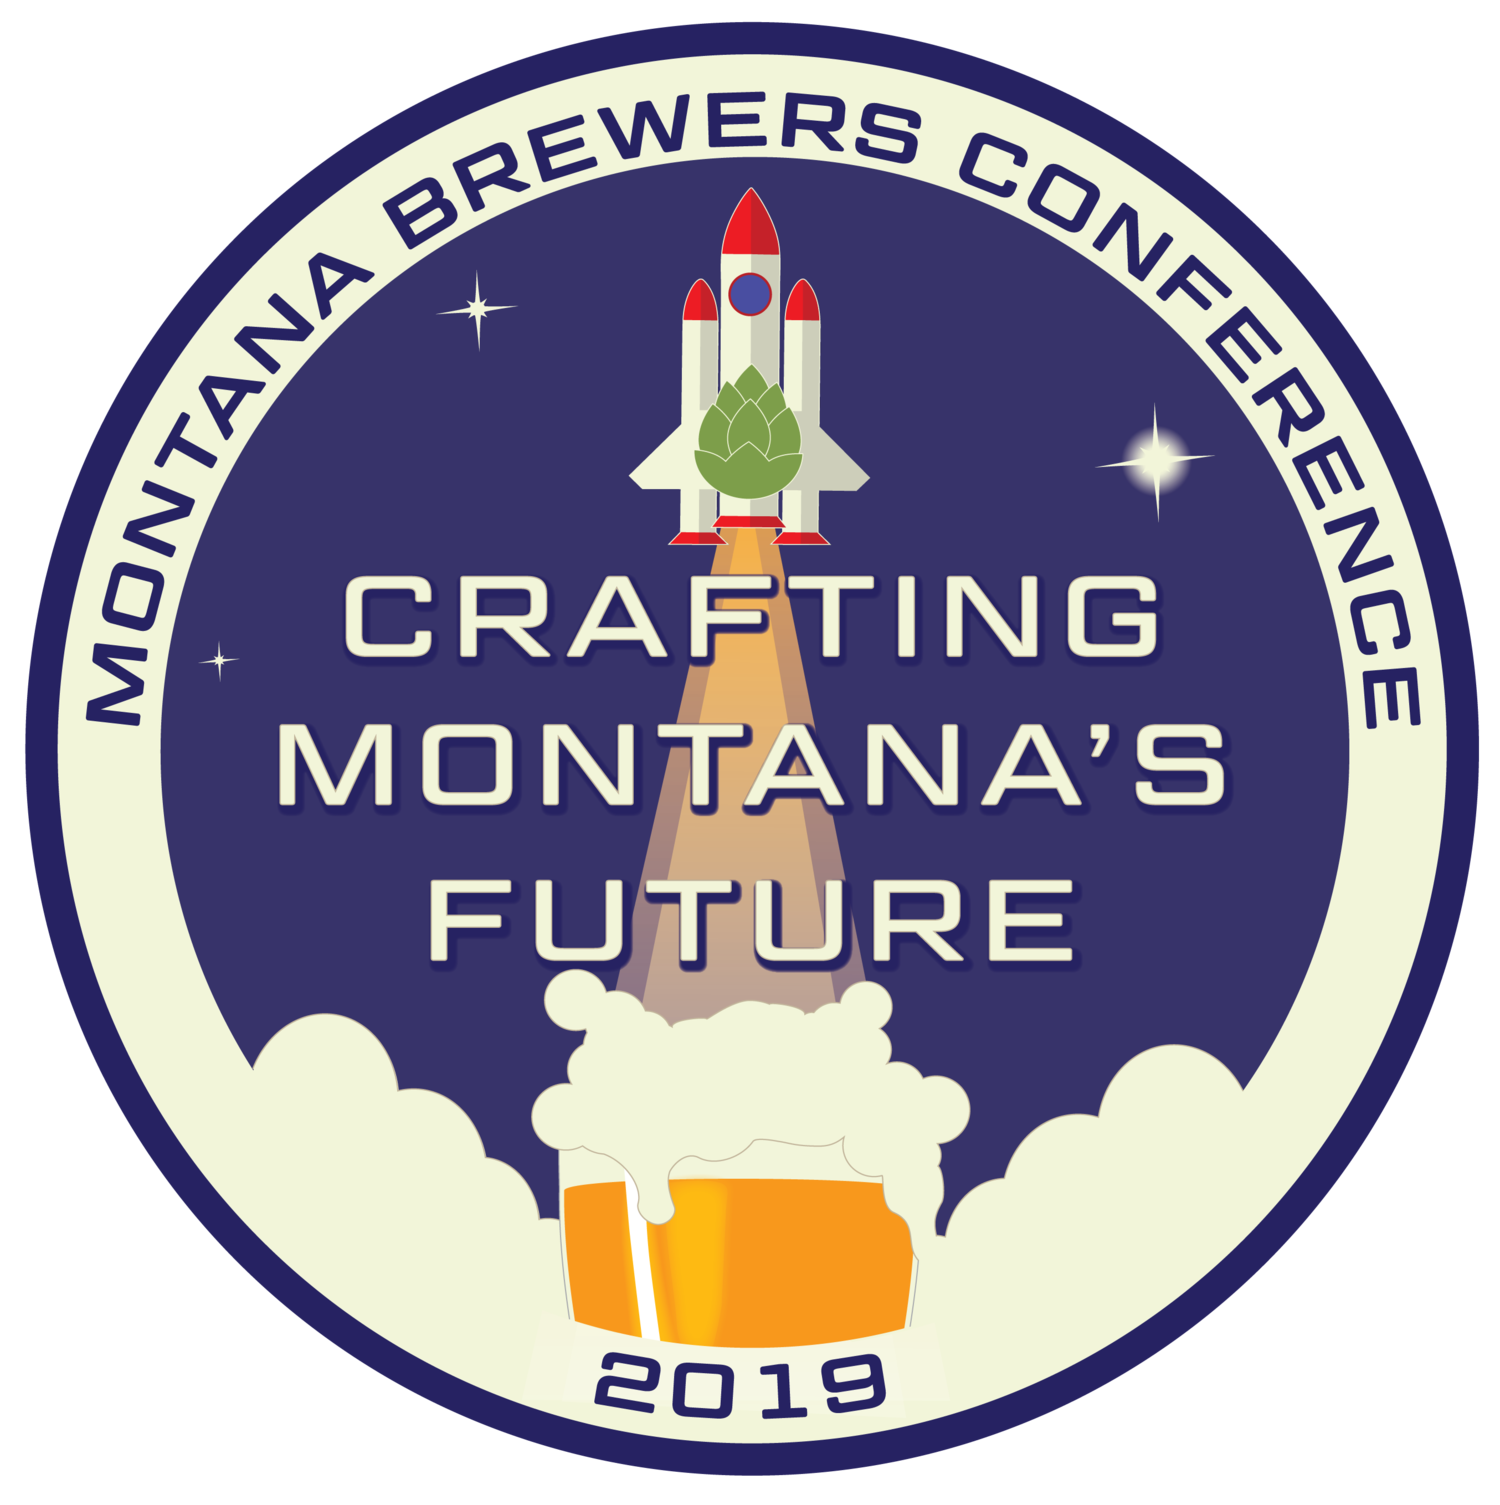 Montana Brewers Conference